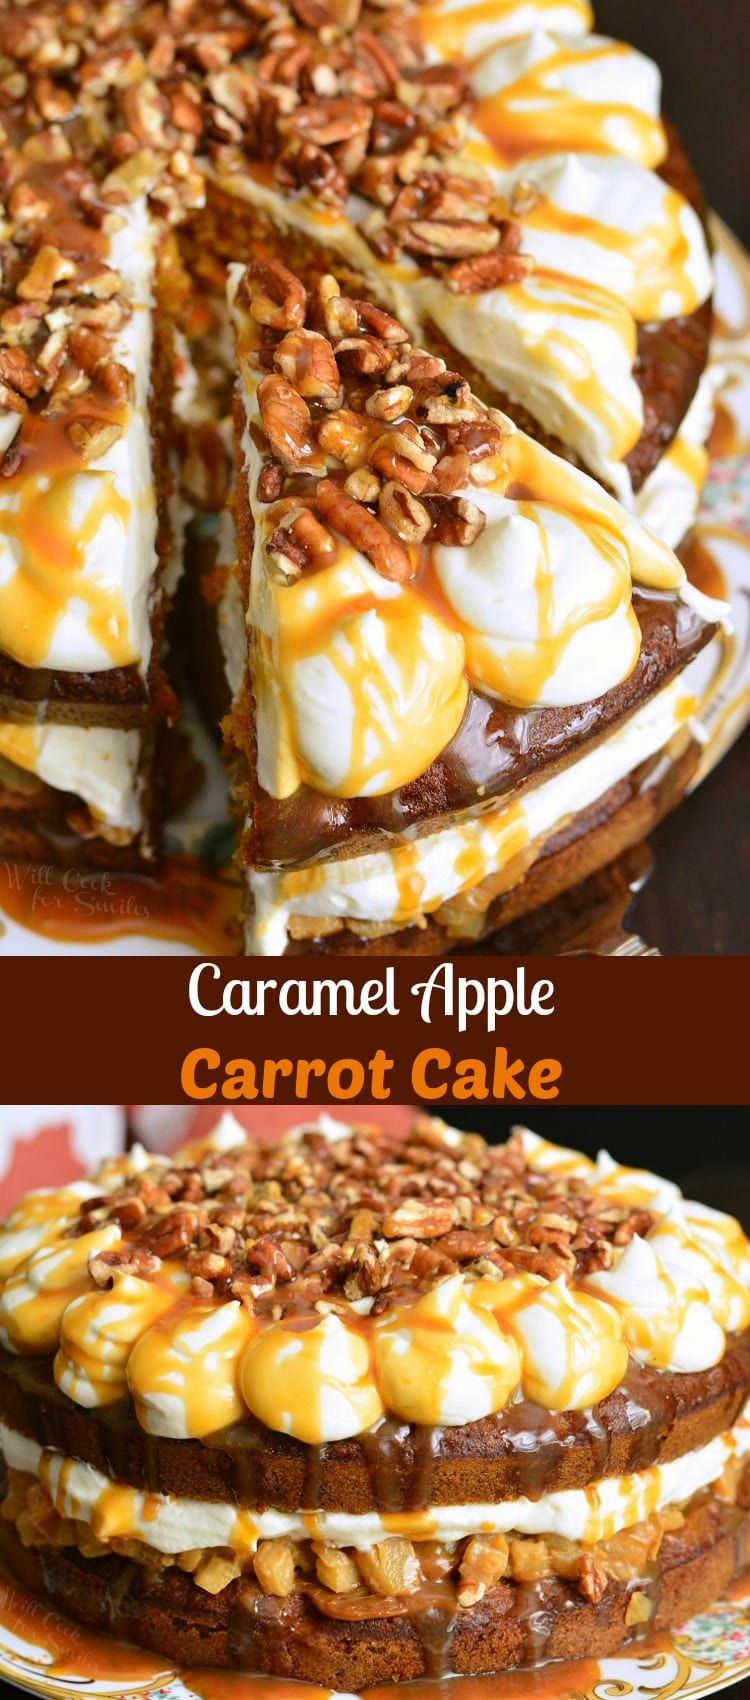 Caramel Apple Carrot Cake. This carrot cake is soft and moist, filled with caramel apples in the cake and in the filling. It's frosted with cream cheese frosting and topped with crushed pecans and more caramel. #cake #carrotcake #applecake #caramelapple #fallcake #holidaydessert